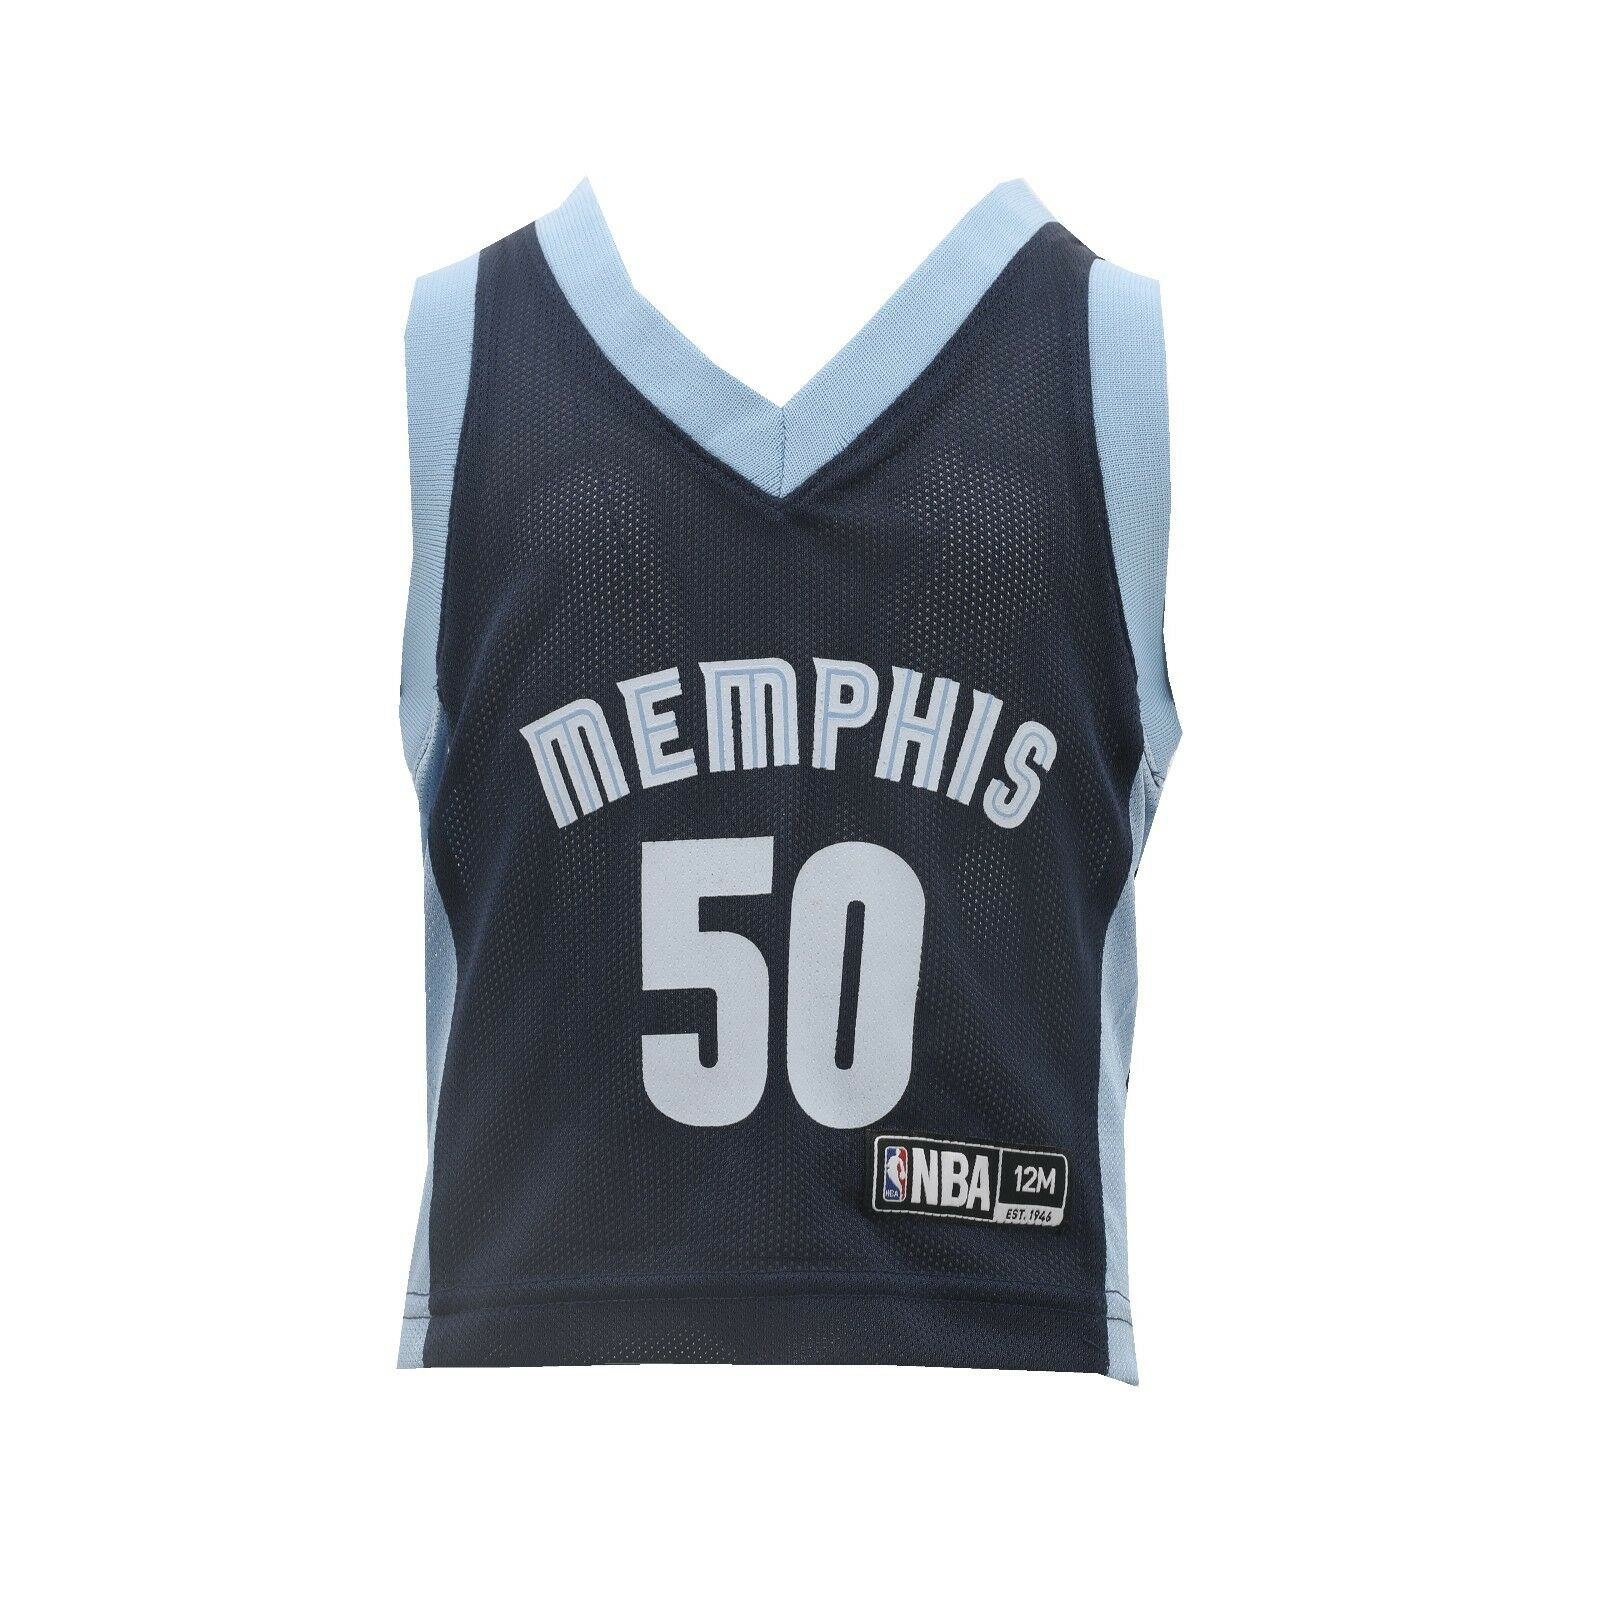 Details about Memphis Grizzlies NBA Official Baby Infant Size Zach Randolph  Jersey New Tags fcbf6bf0c